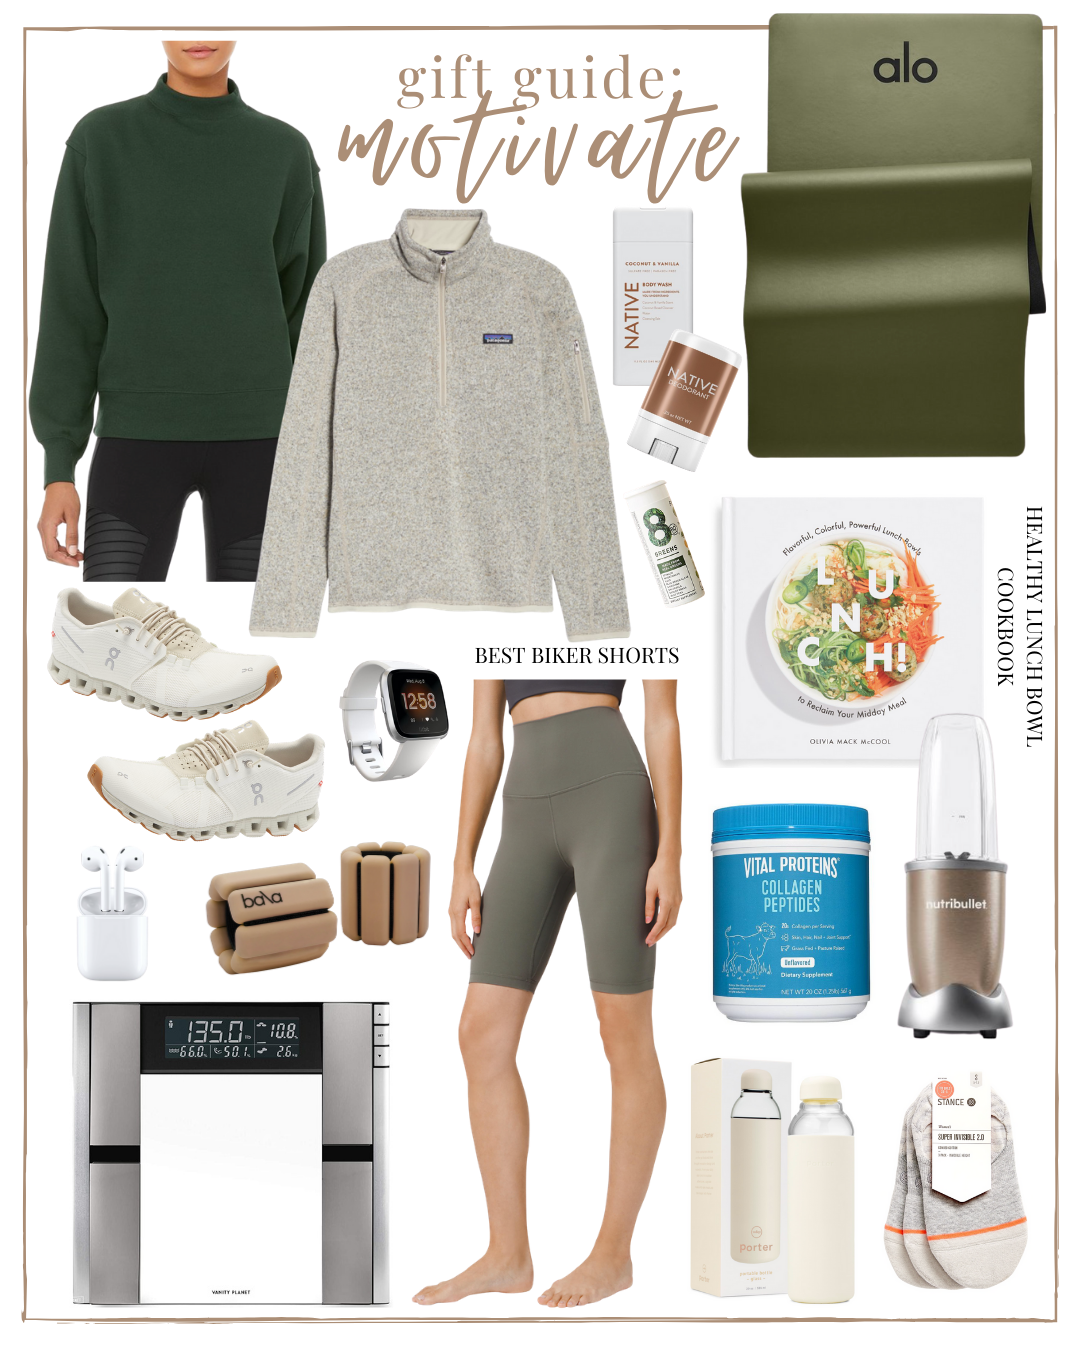 Health & Fitness Gifts 2020 Holiday Gift Guide Motivate - a gift guide for the health & fitness lover | Louella Reese